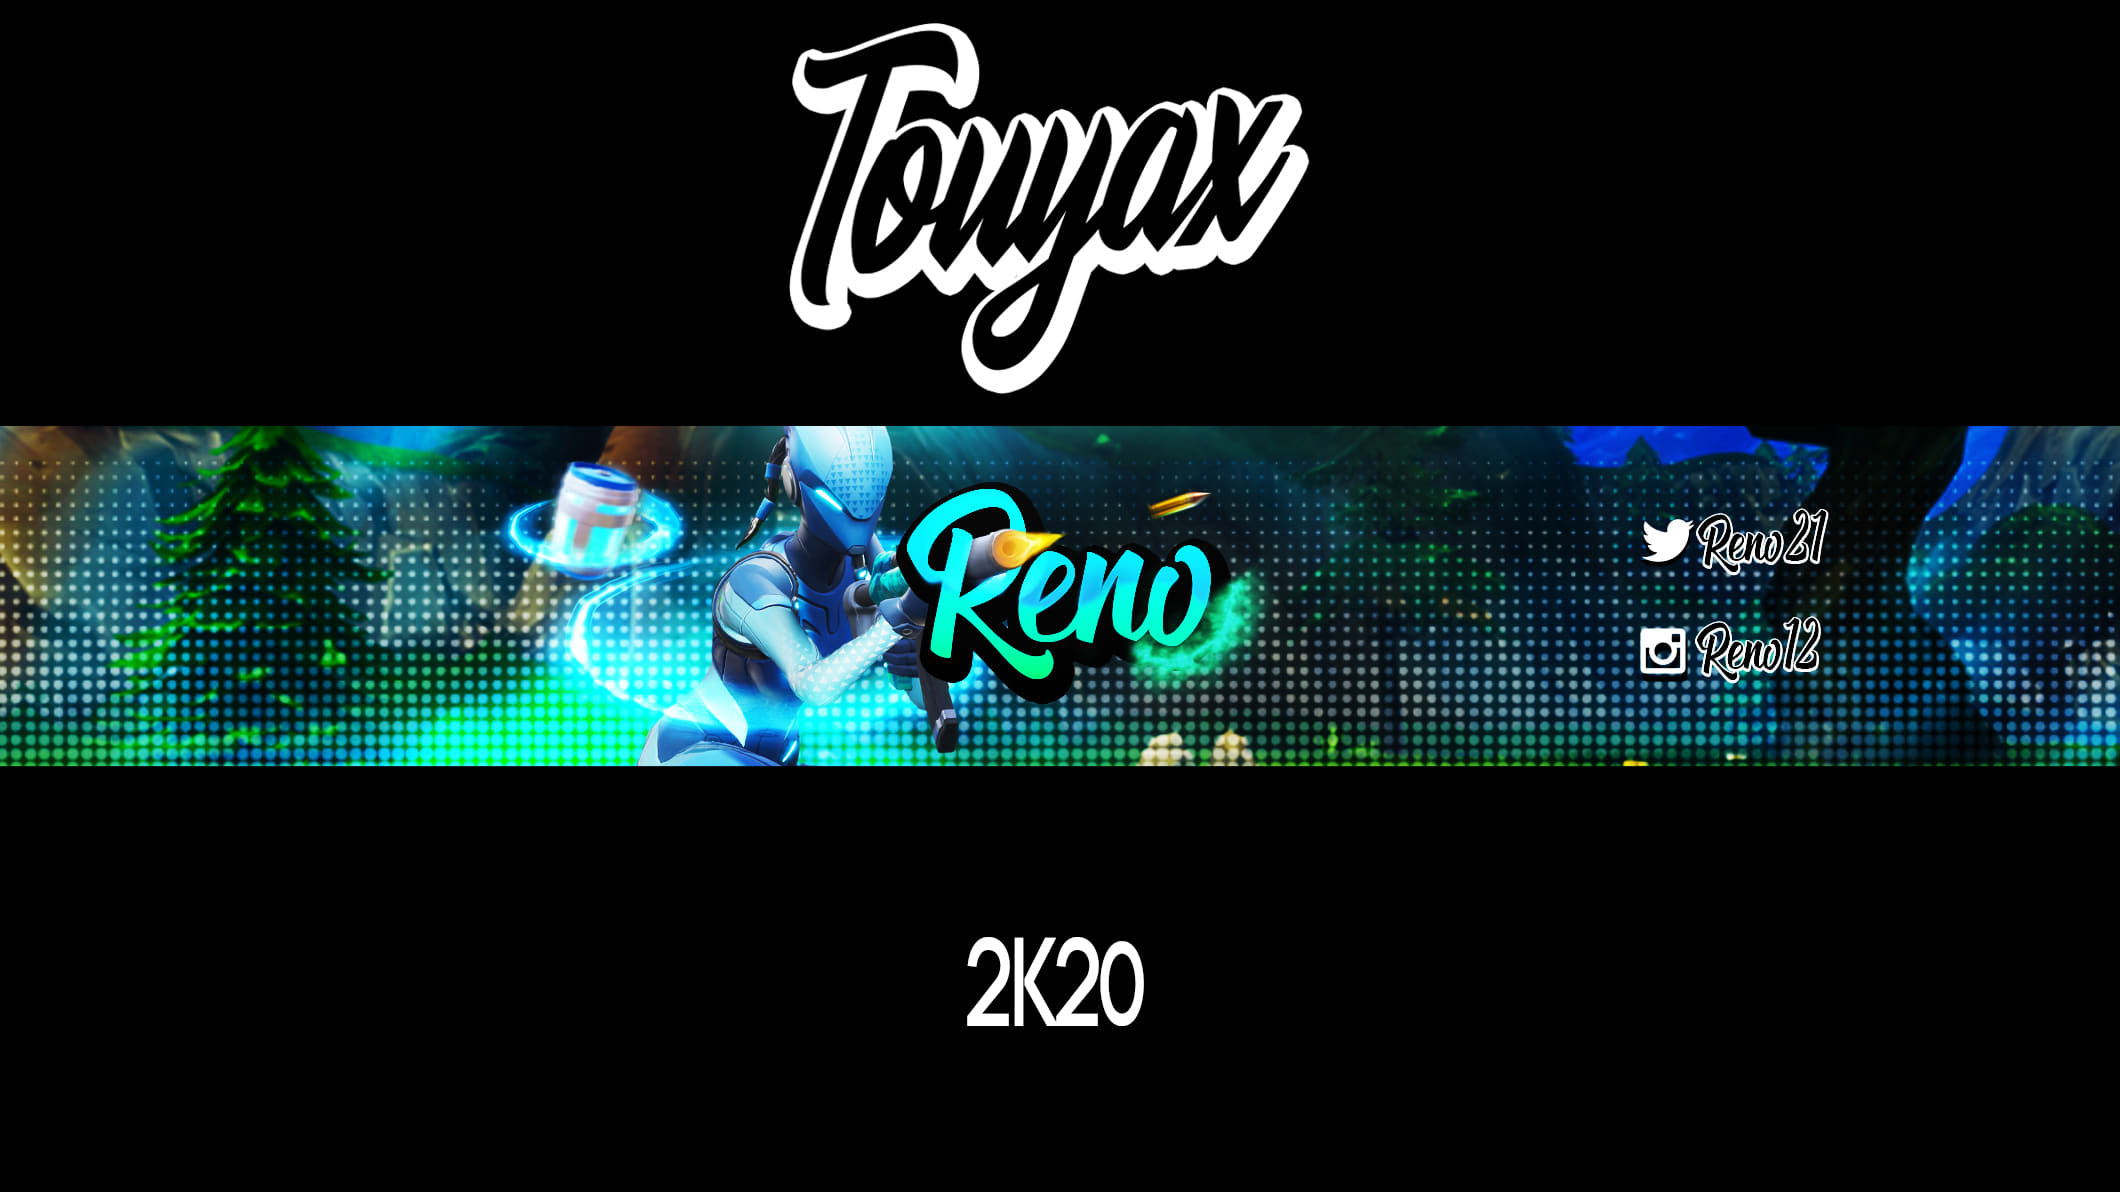 Fortnite Pictures For Art Banner Design A Fortnite Youtube Banner By Touyax Fiverr